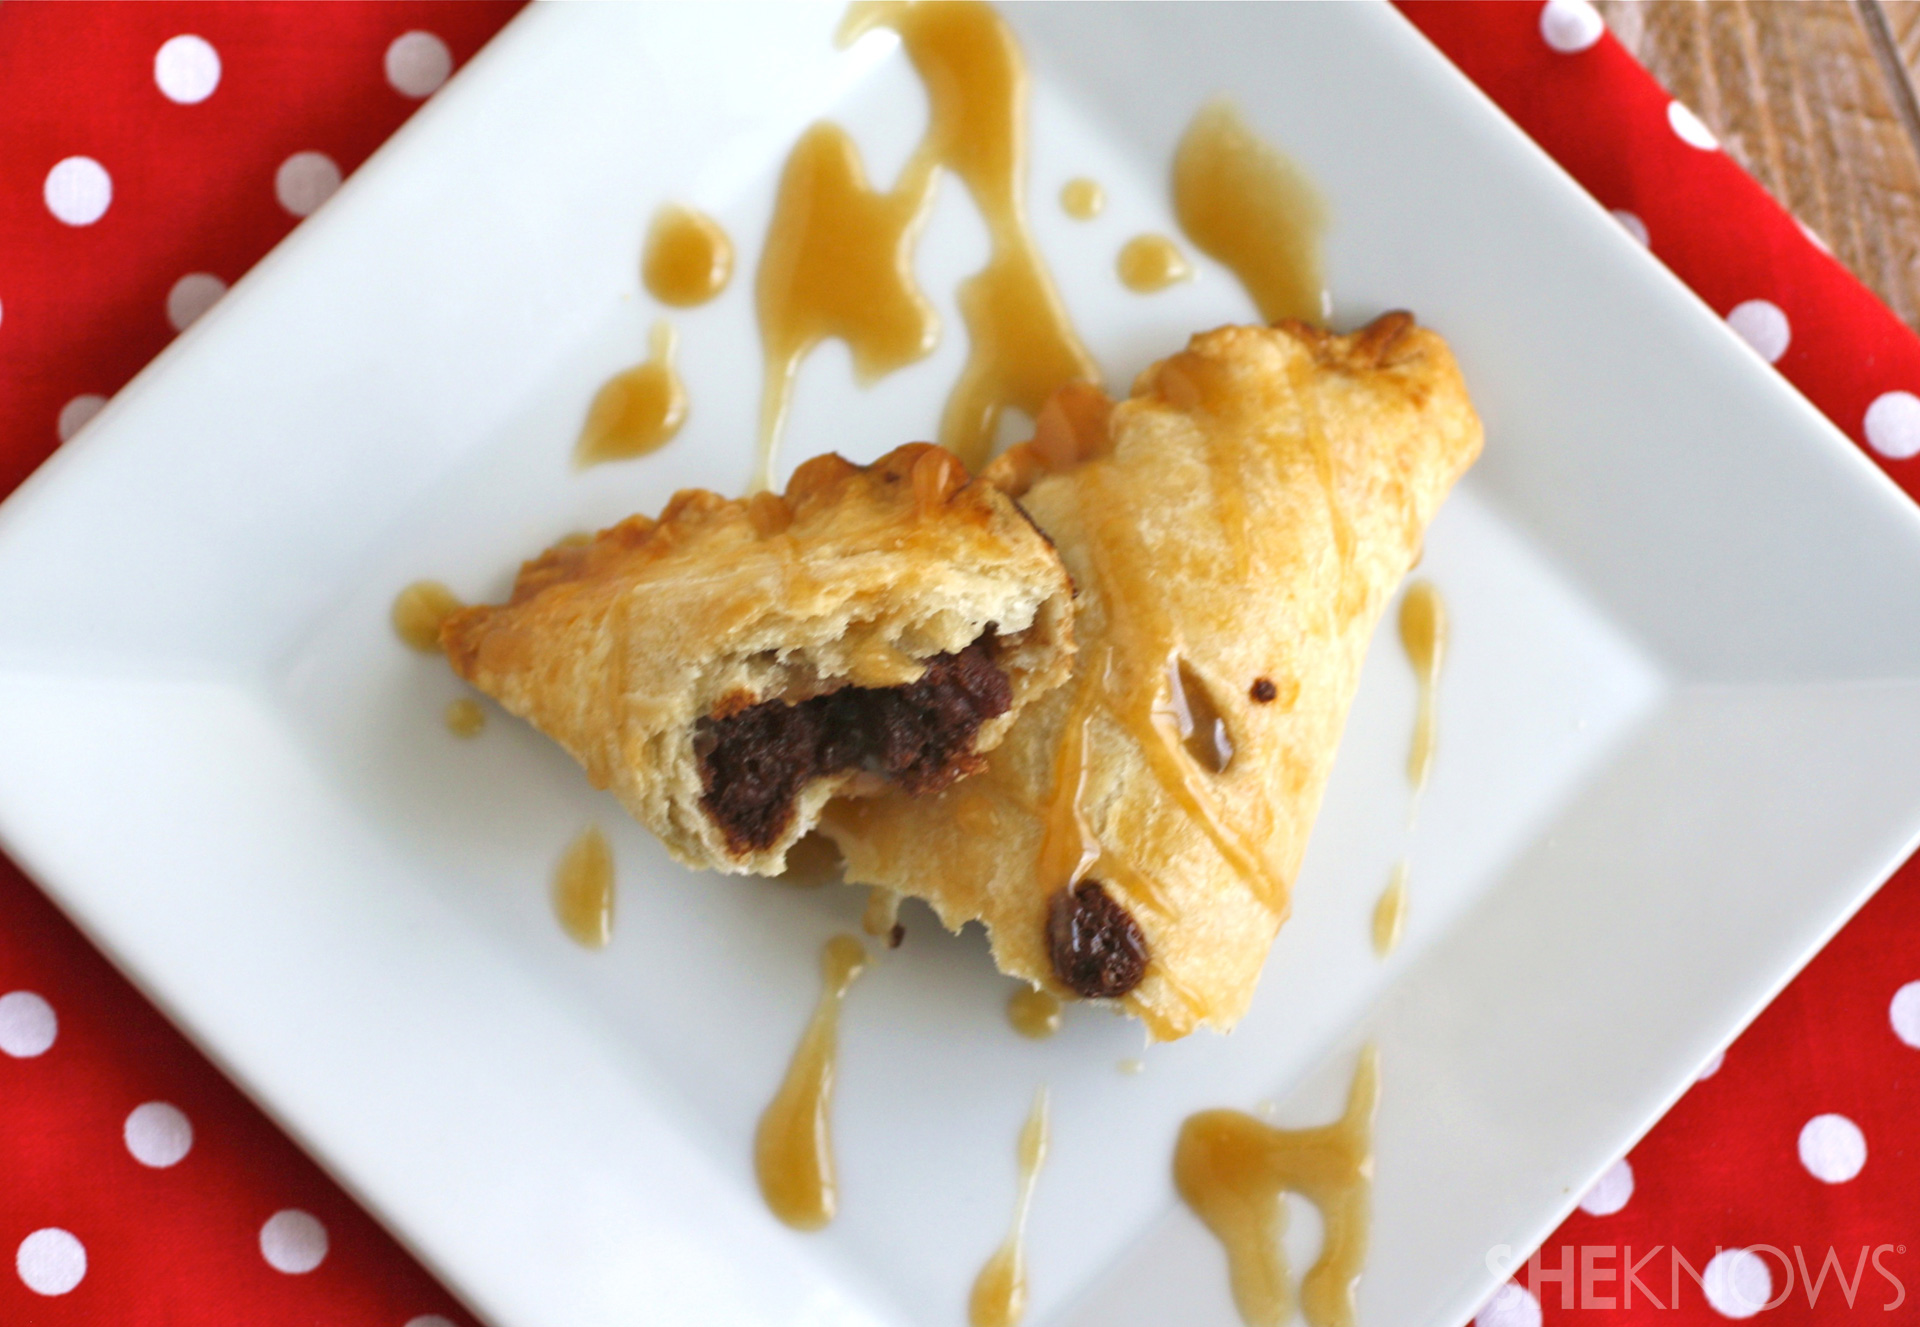 ... hand pies made with chocolate and pecans are a portable dessert